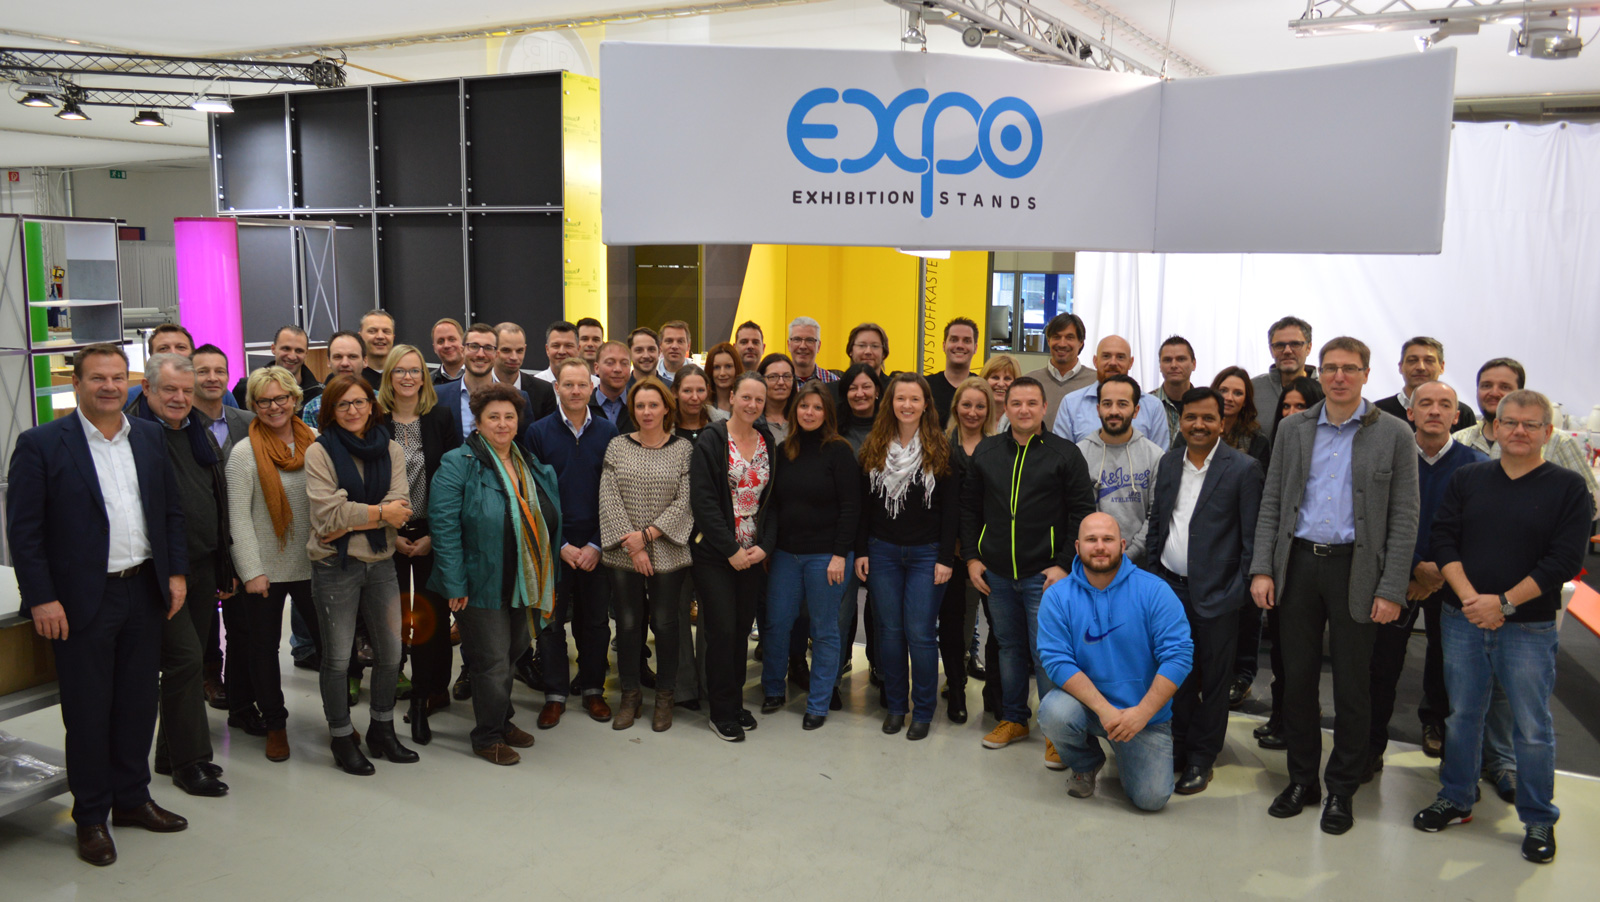 Expo Exhibition Stands Team